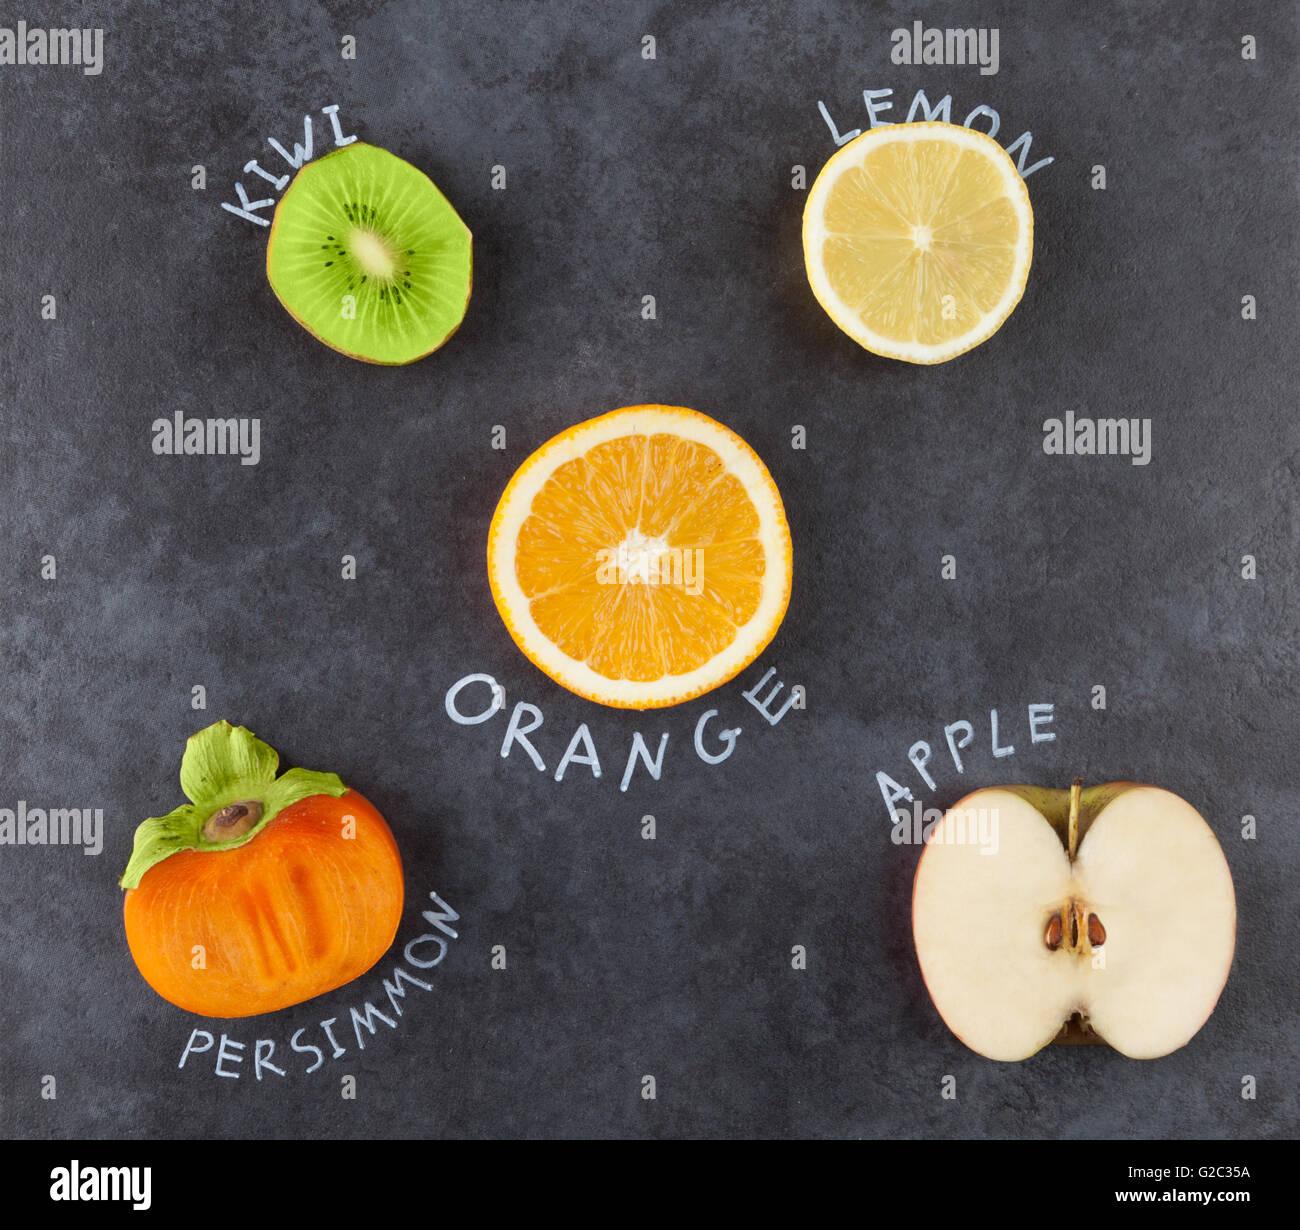 Slices of fruit on grungy dark background. Kiwi, lemon, orange, persimmon, apple. Top view. - Stock Image